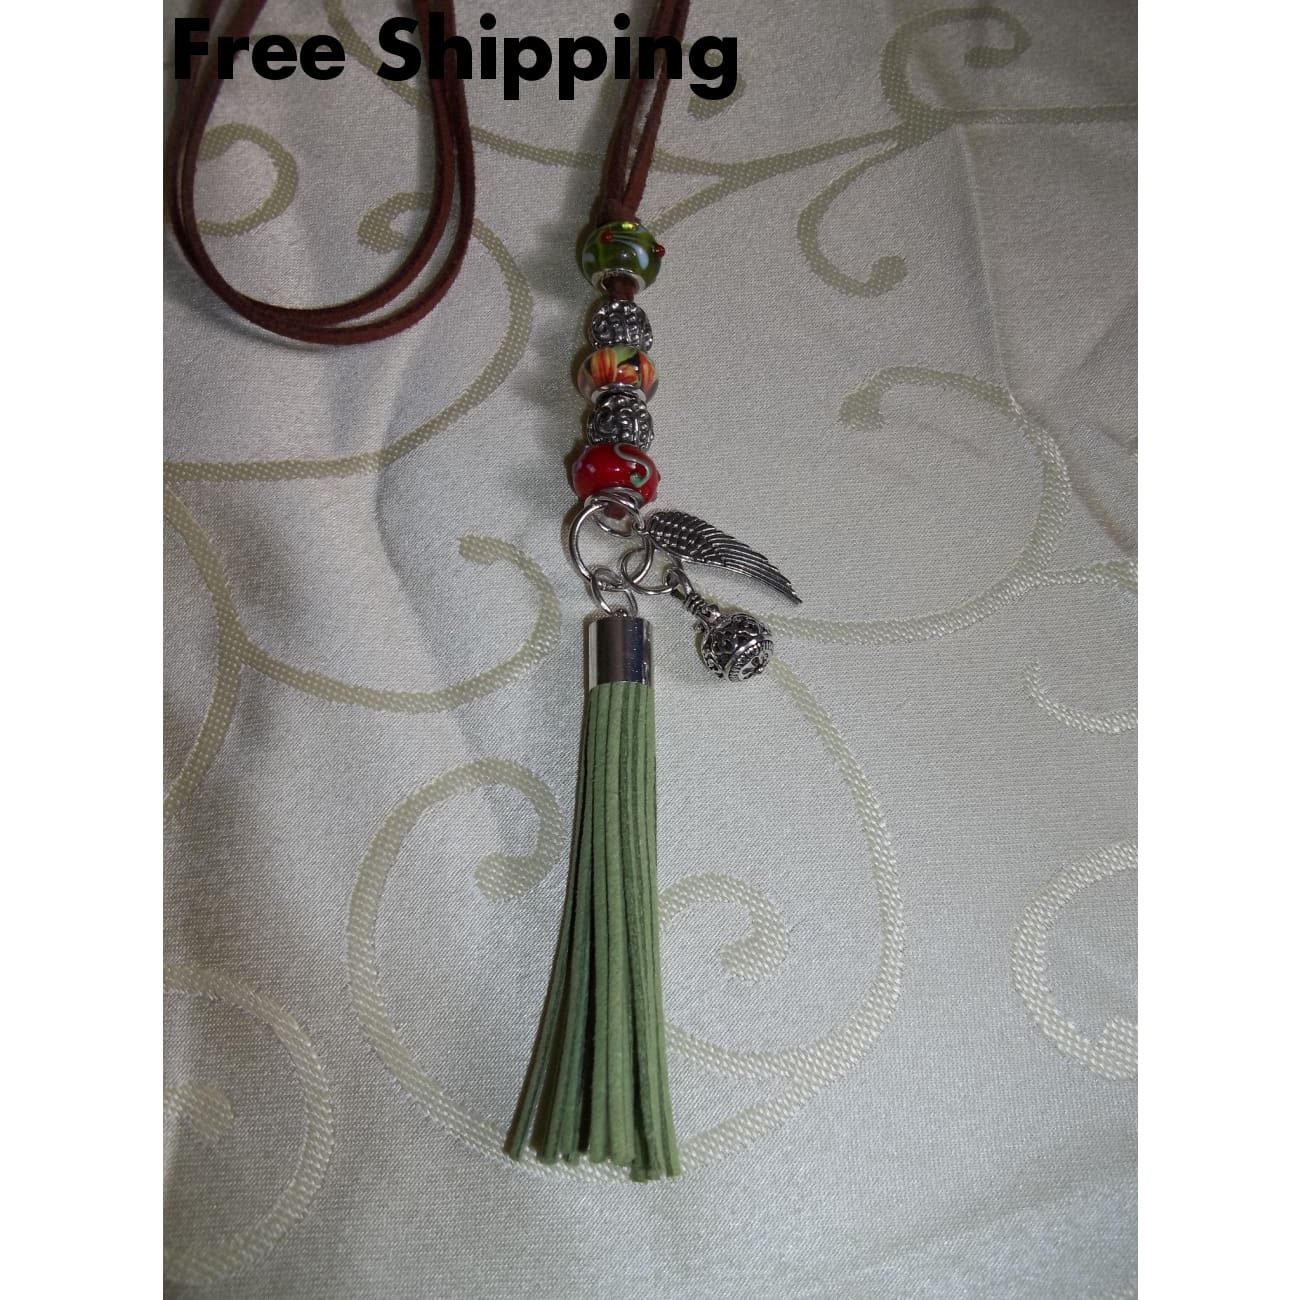 Sage Green & Red Hand Crafted Leathertassel 28 Leather Thong Necklace - Pendants